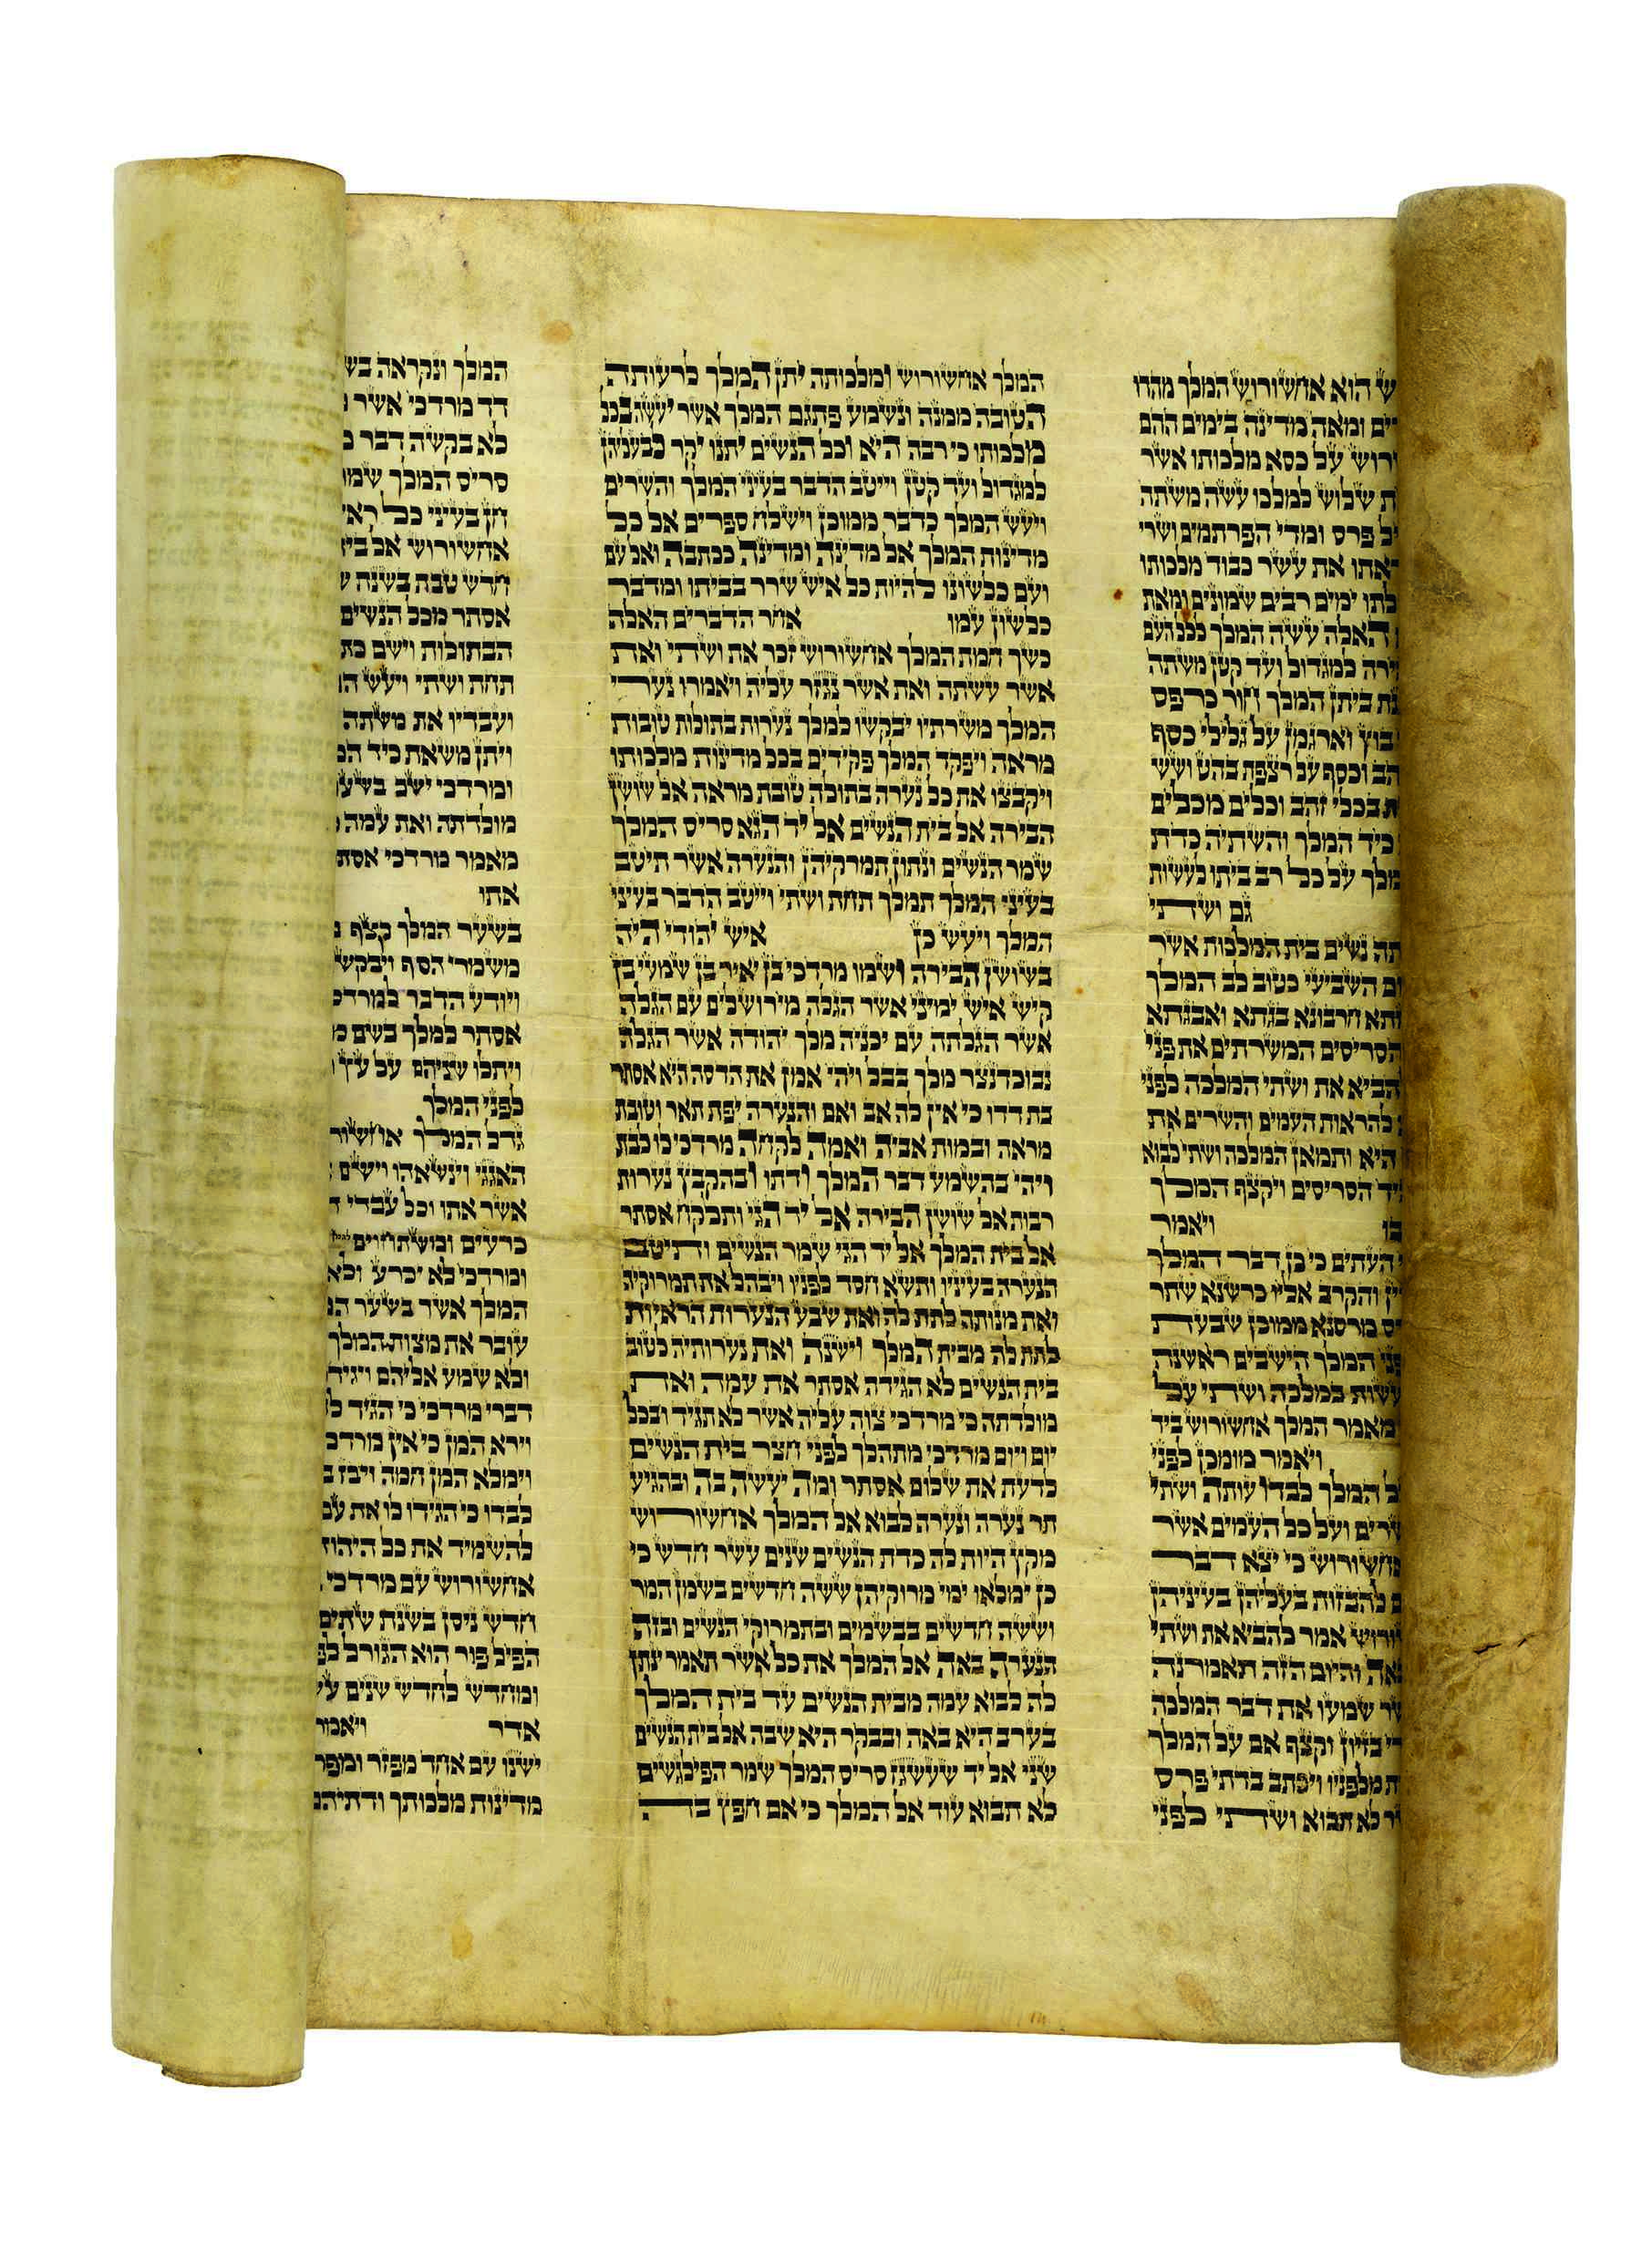 usually megillot with highlighted names have only 3 5 highlighted names height of parchment approximately 58 cm 42 lines per column